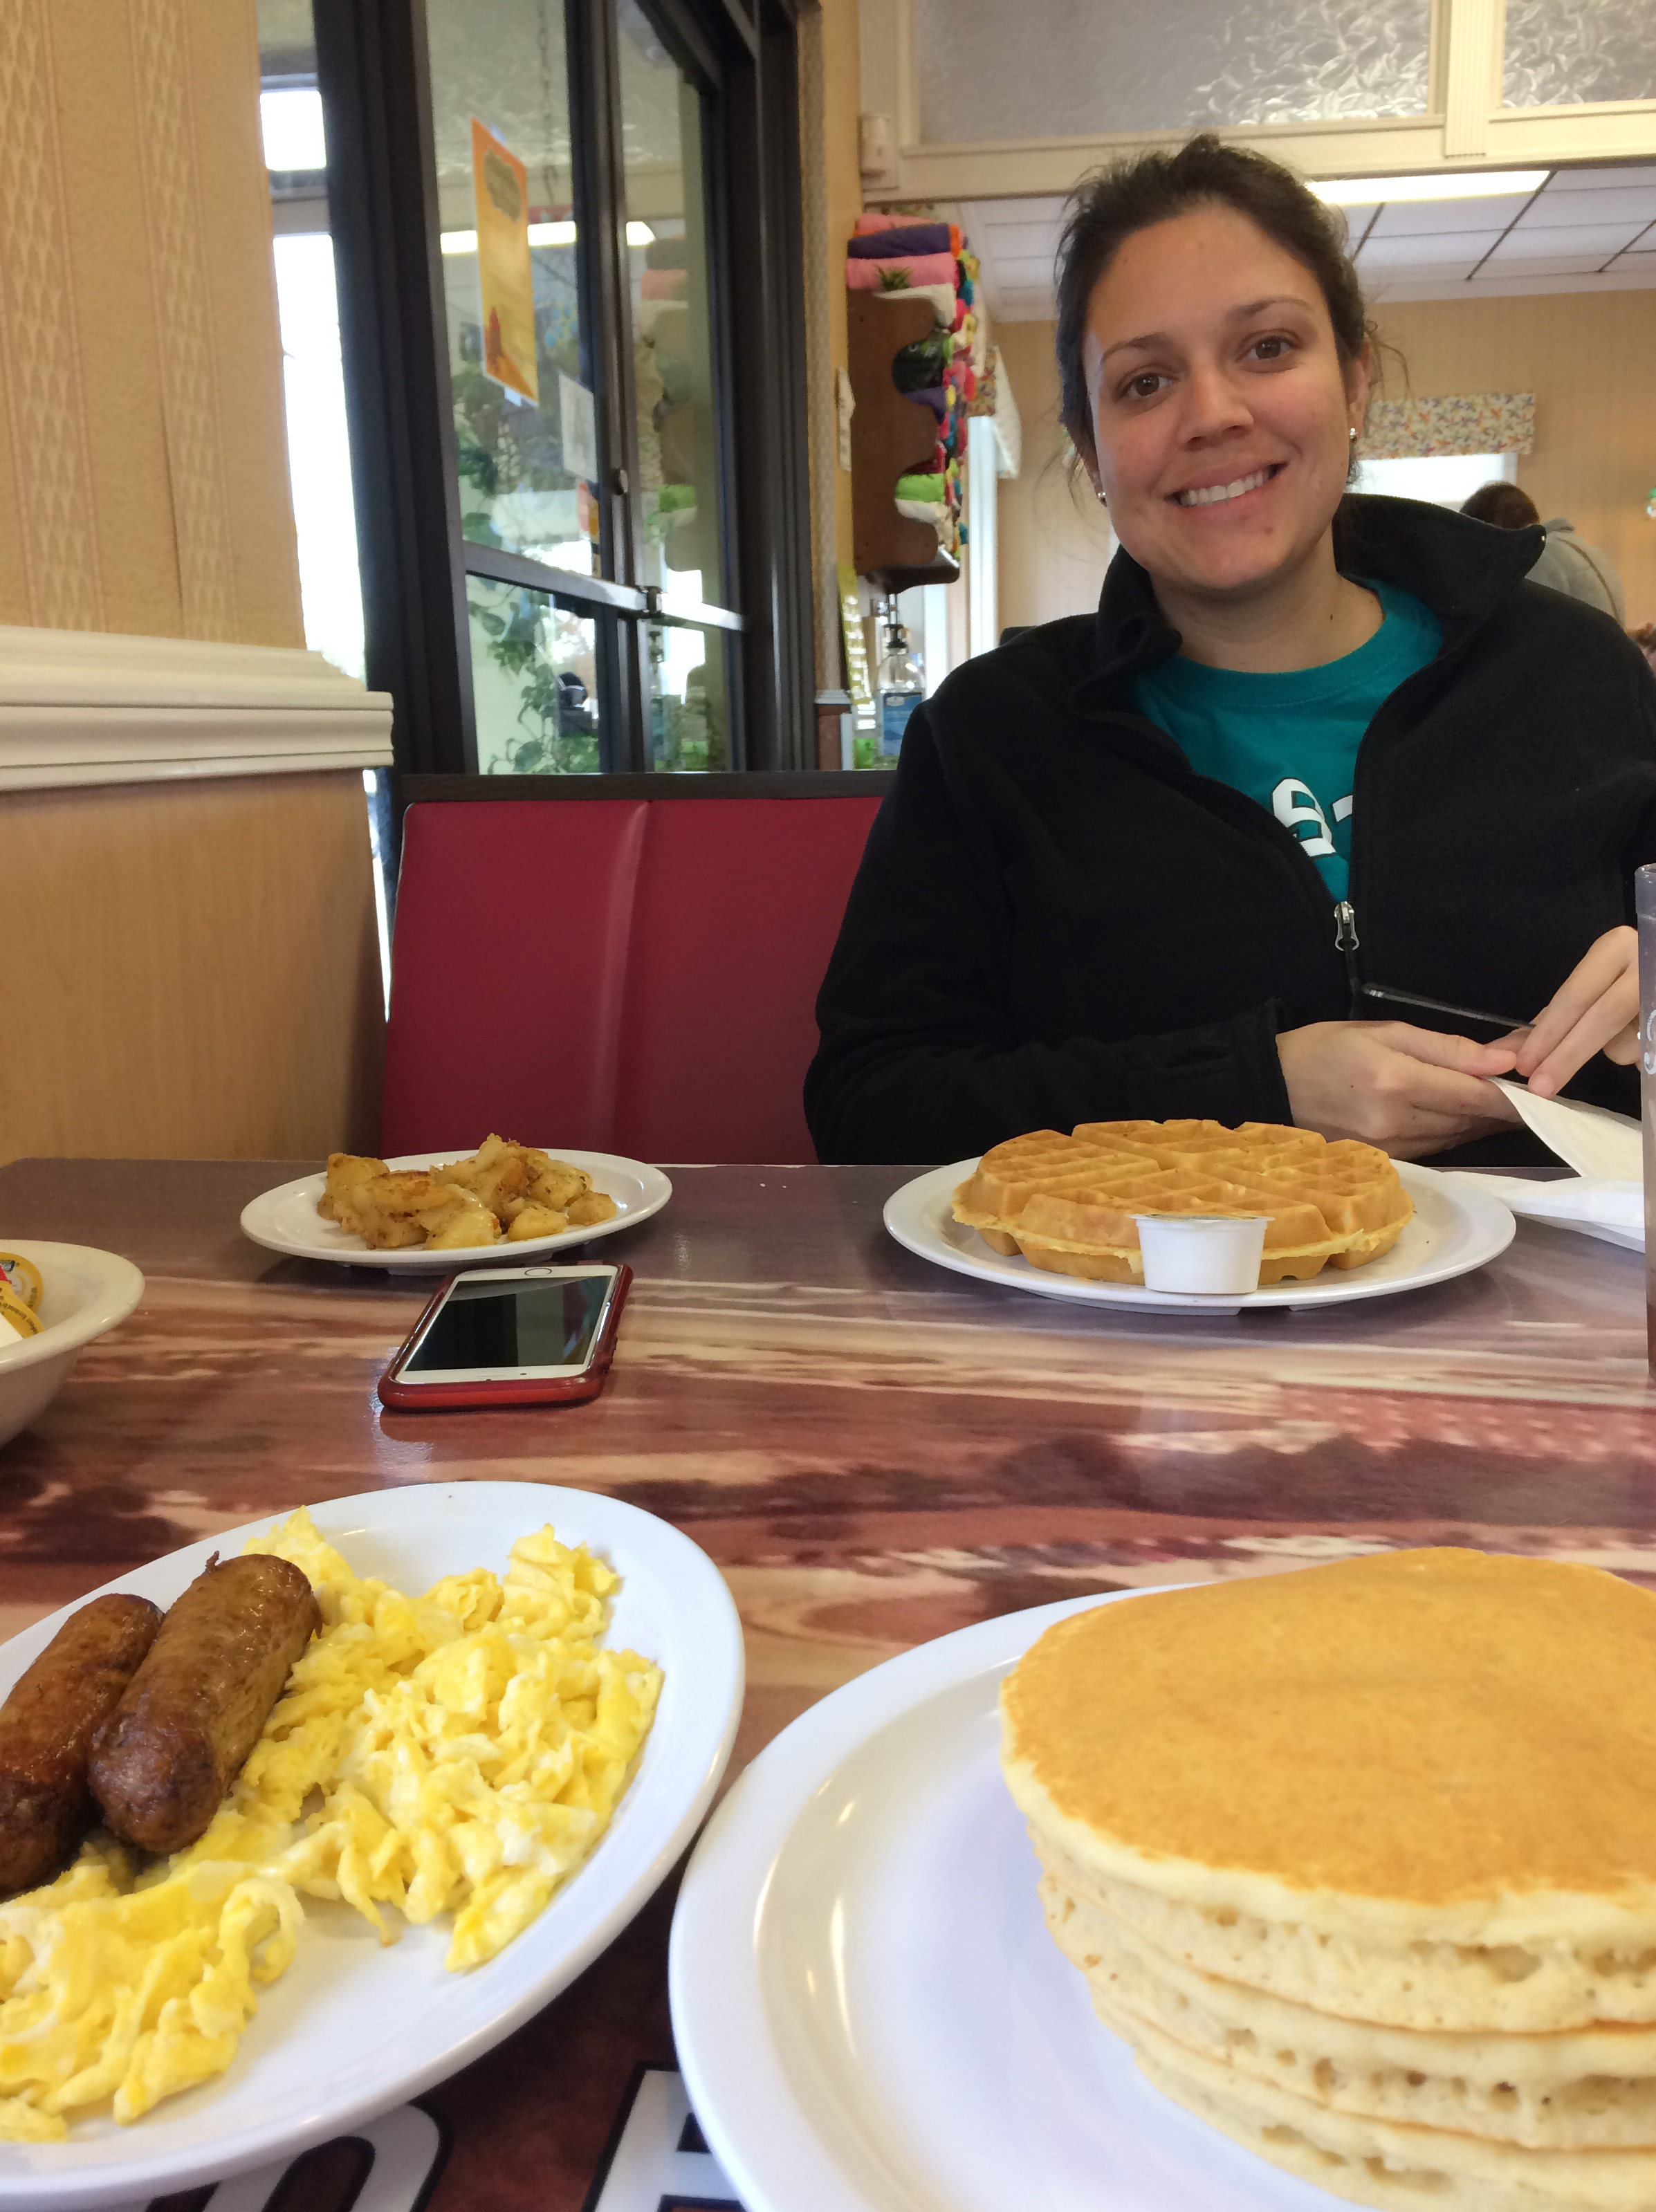 I took this photo of Sidney with our food on the table at the Southern House of Pancakes in Myrtle Beach.